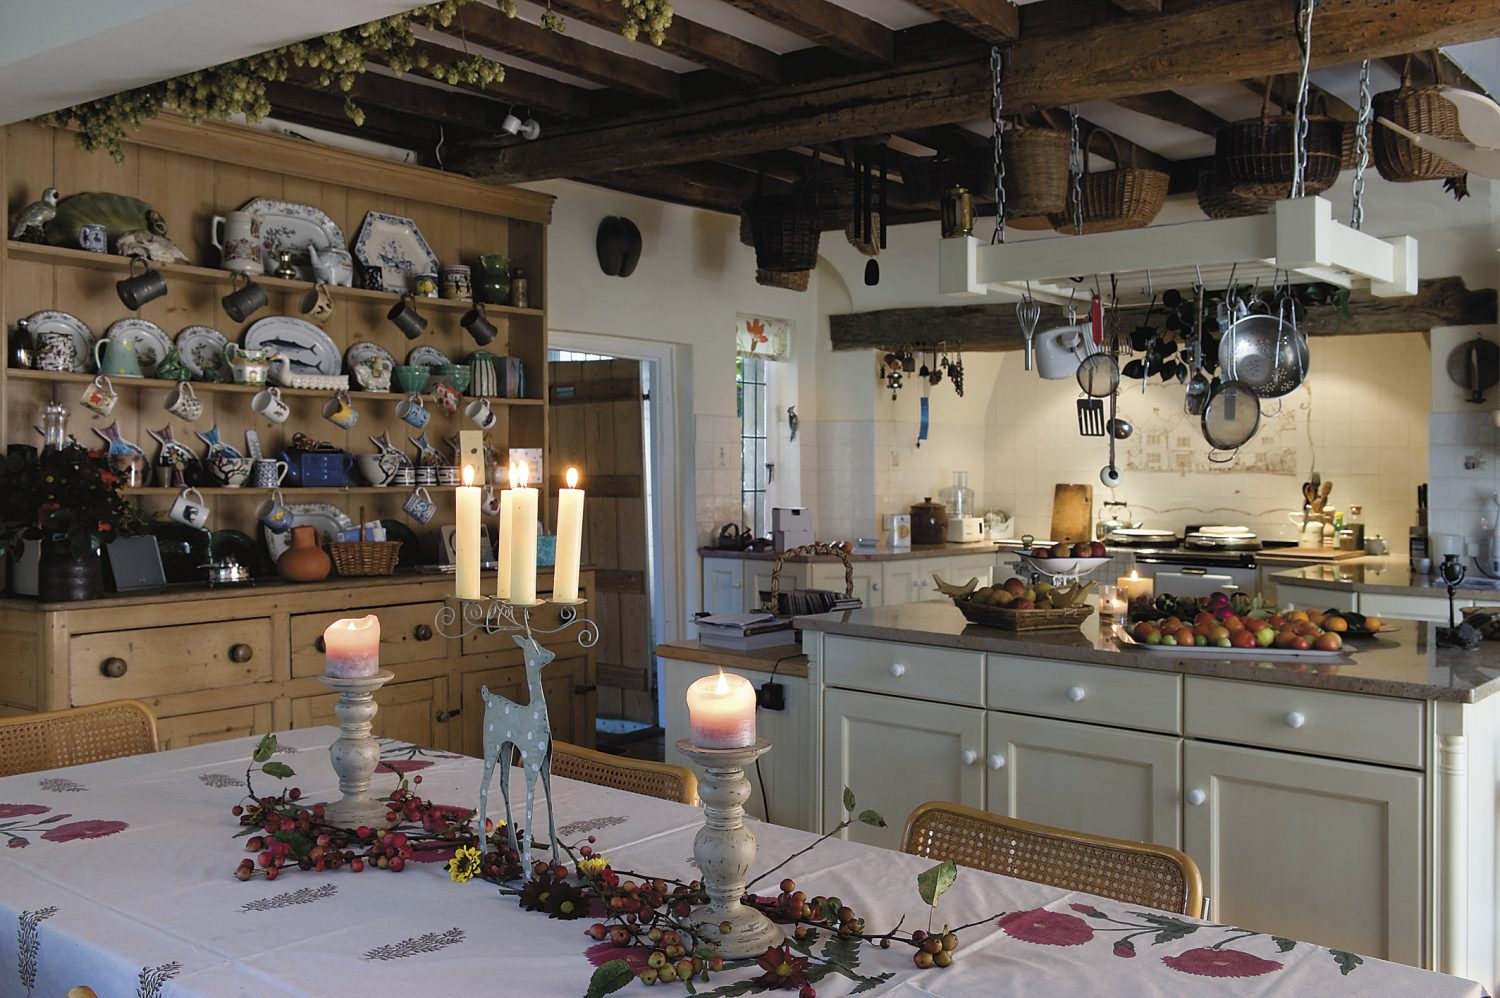 the large kitchen is warmed by an Aga, a boon on power-cut days, and the large dresser is from the house where Jemima was brought up